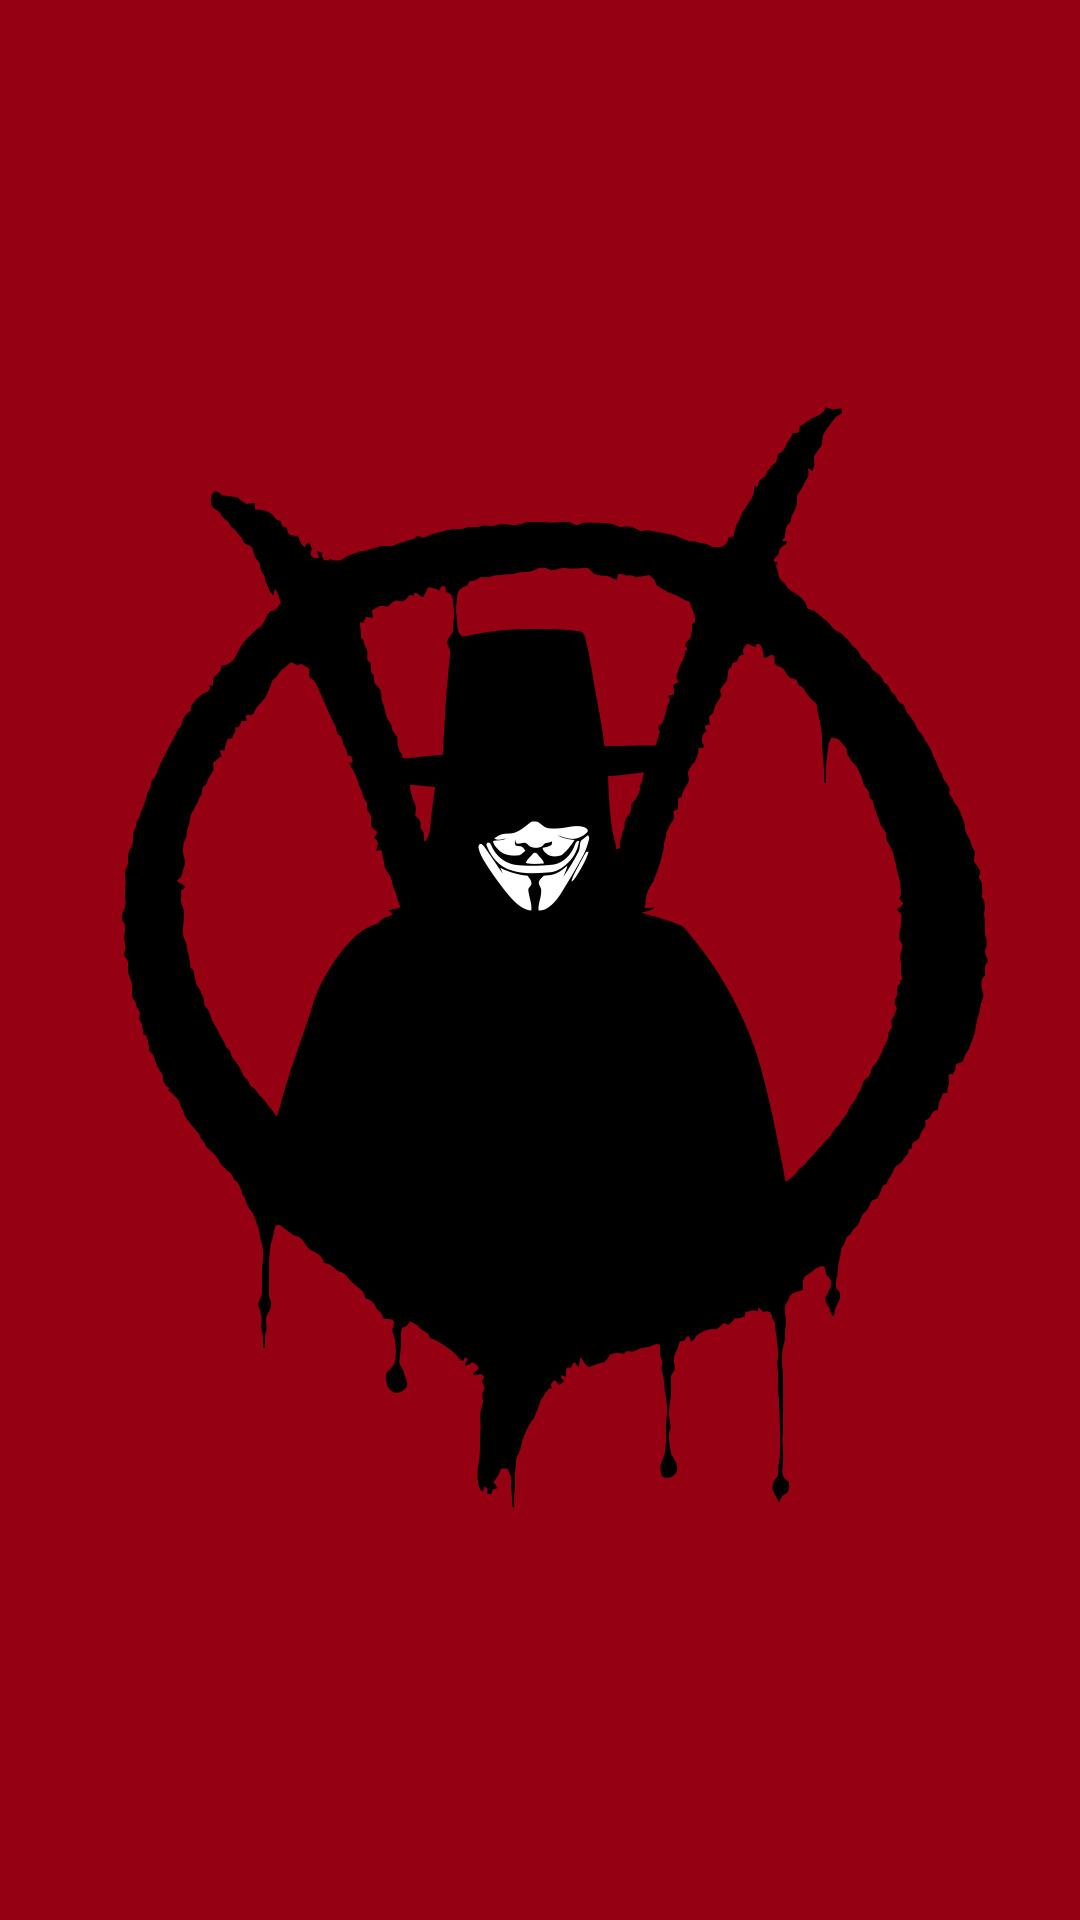 V For Vendetta Wallpaper For Android Apk Download